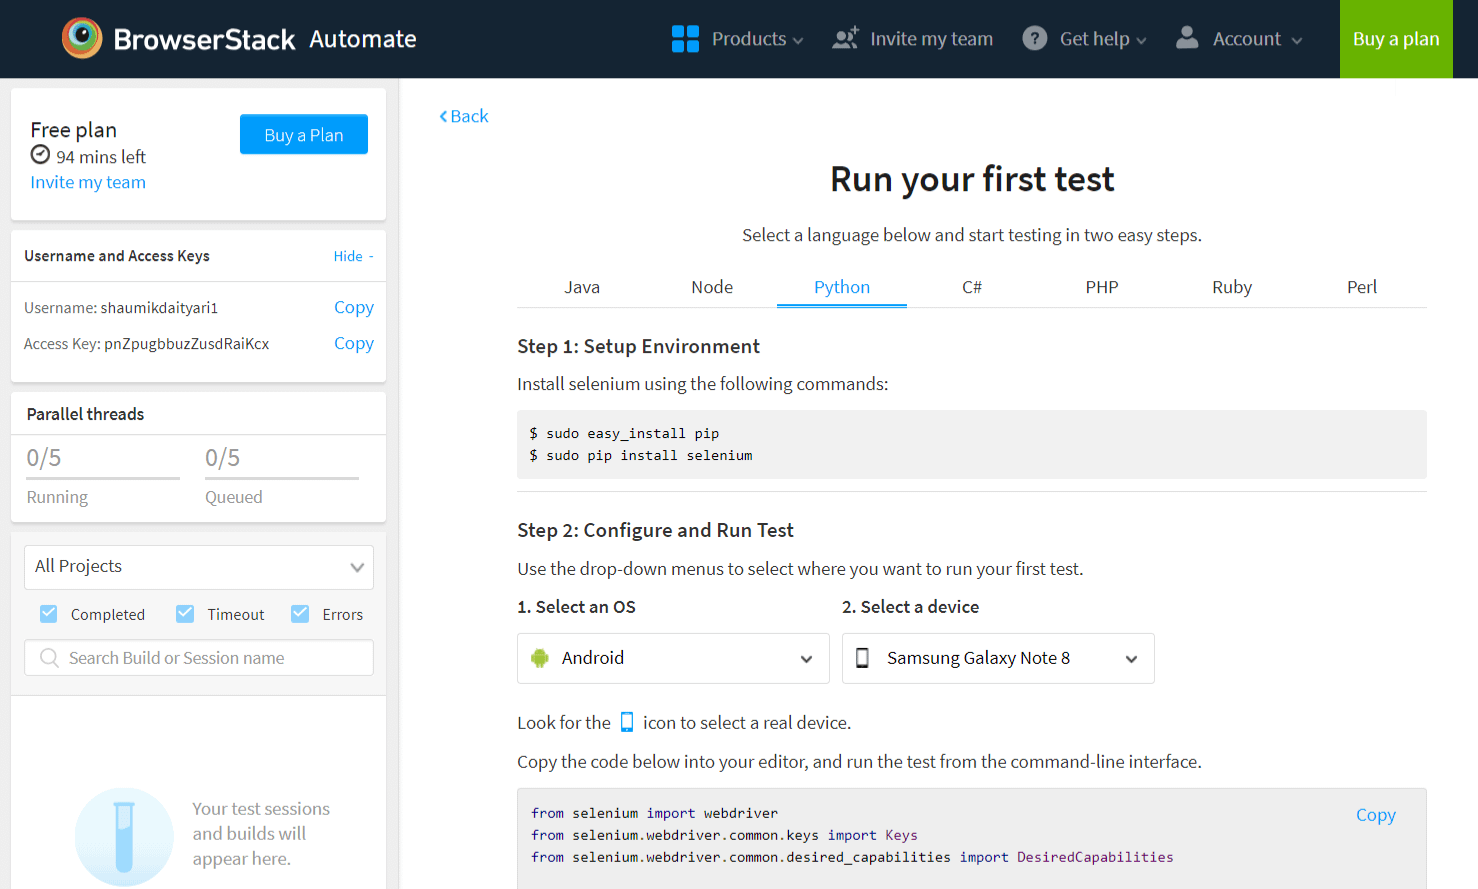 Setting up your first test on BrowserStack